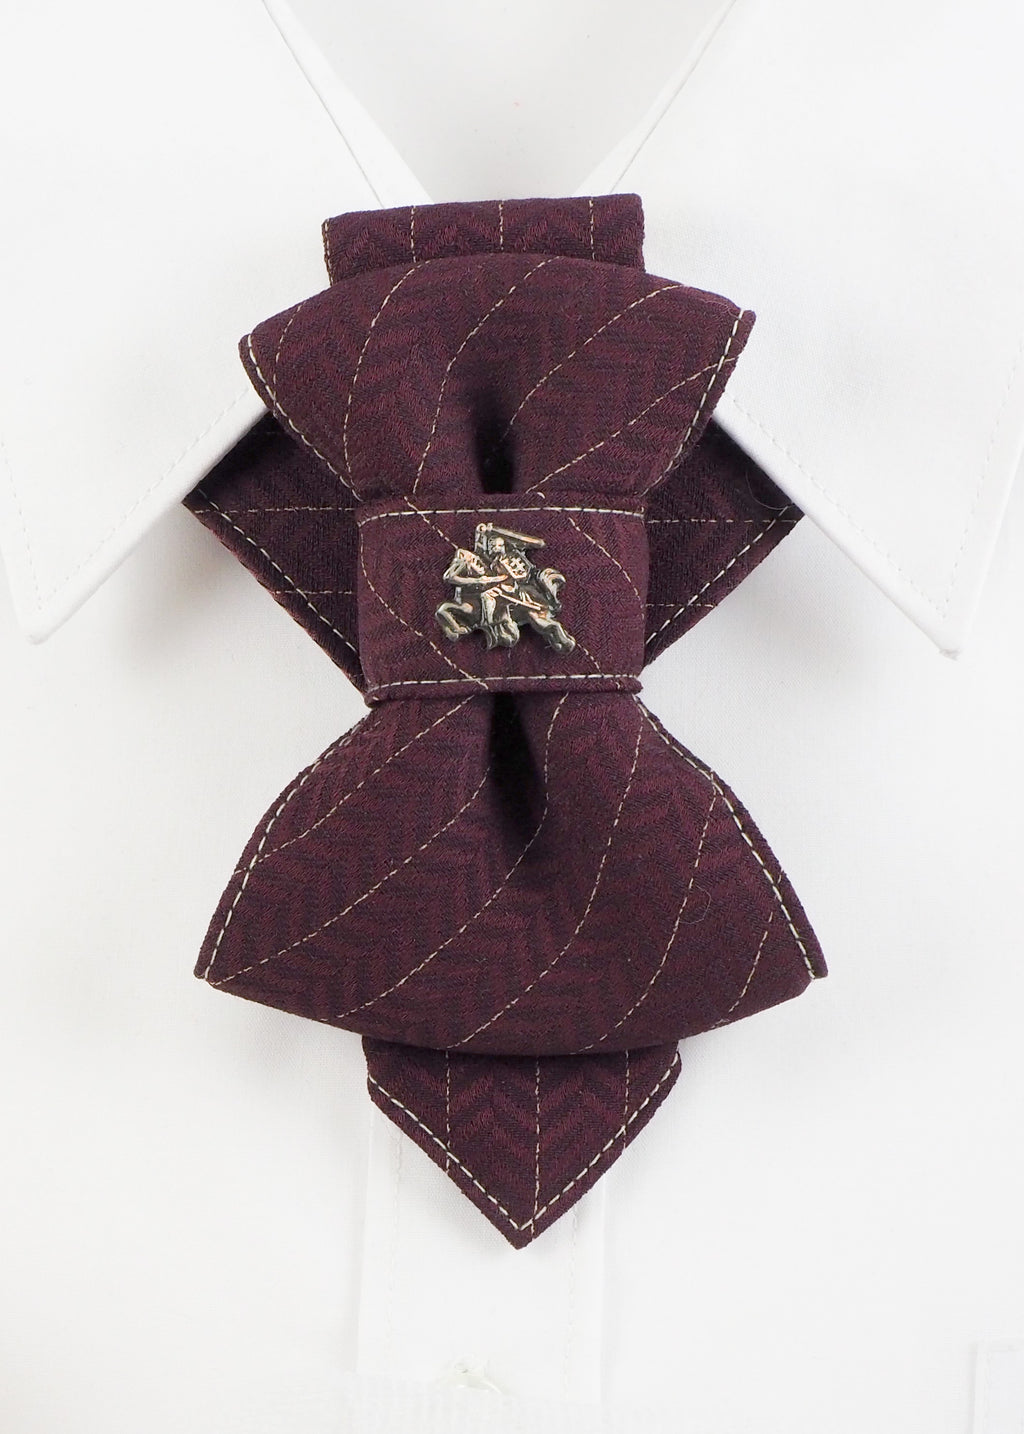 Ruty Design - bow tie jewelry, Bow tie, Necktie, Ruty tie, Hopper bow tie, Vertical bow tie, Hopper tie, Men's Bow Ties,  men's accessories,  Original bow tie, Ruty hopper is original vertical bow tie, Fashion Bow Tie, Fancy bow tie